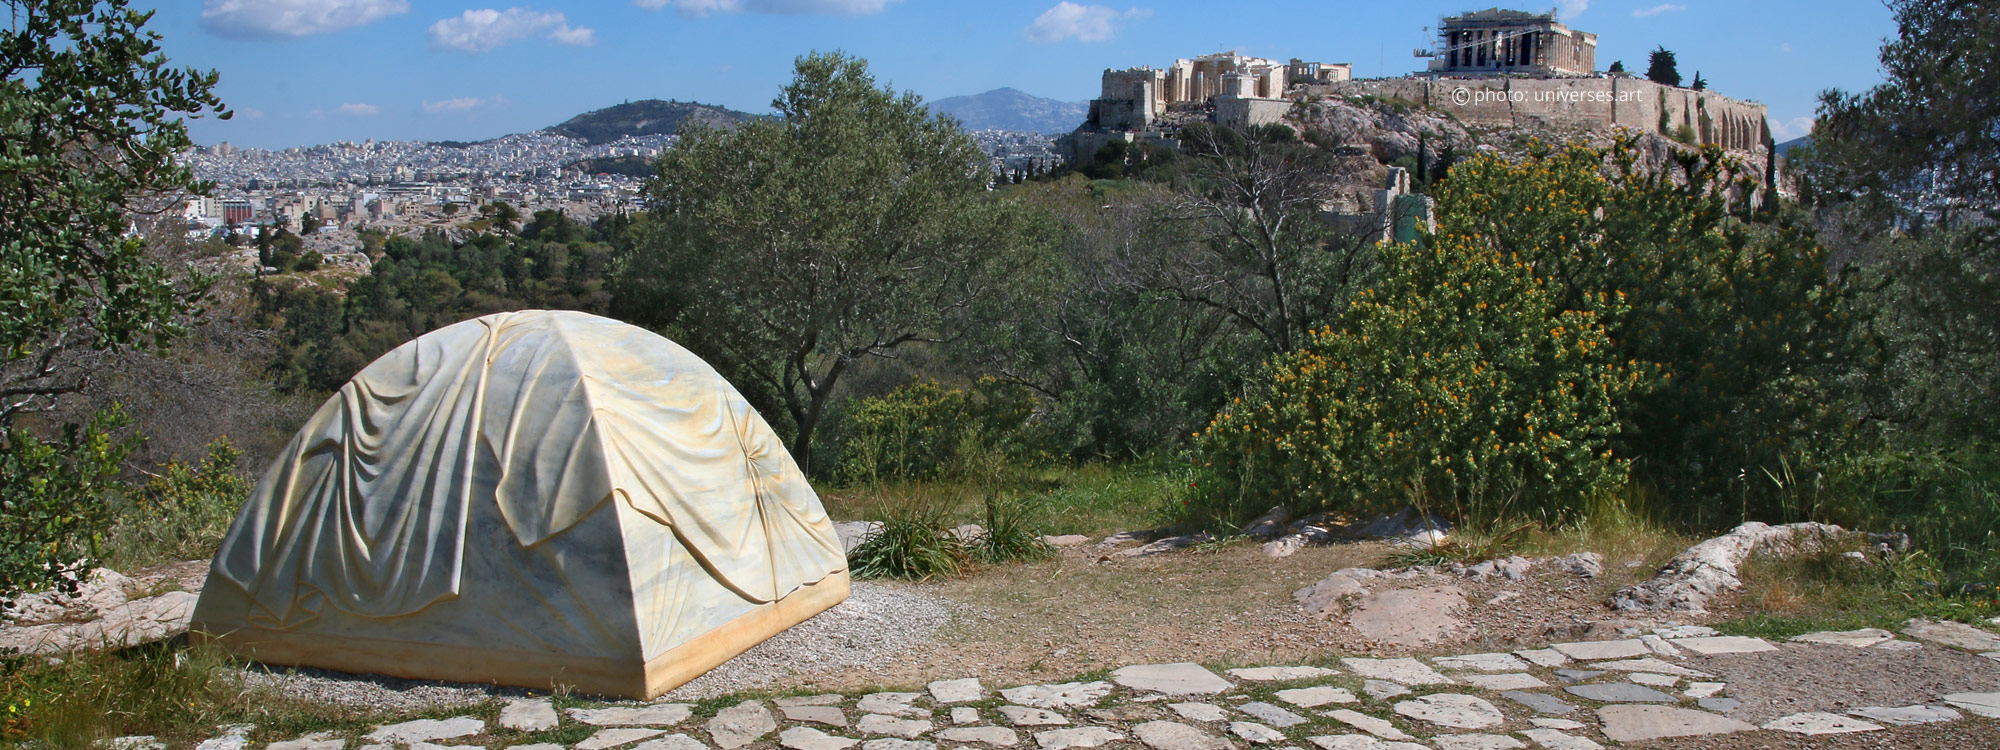 documenta 14 in Athens